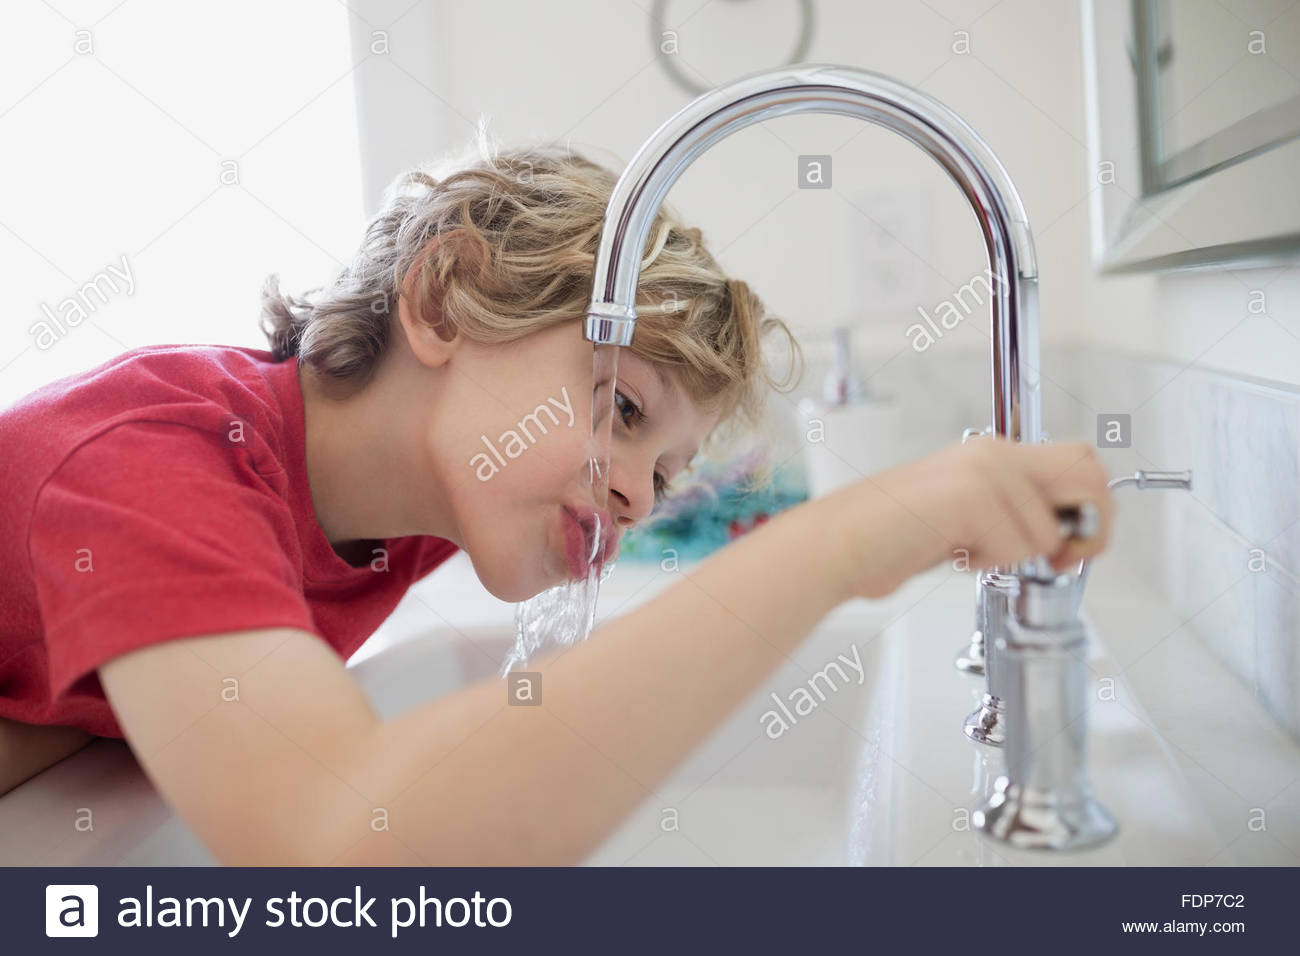 Boy drinking water from bathroom faucet - Stock Image